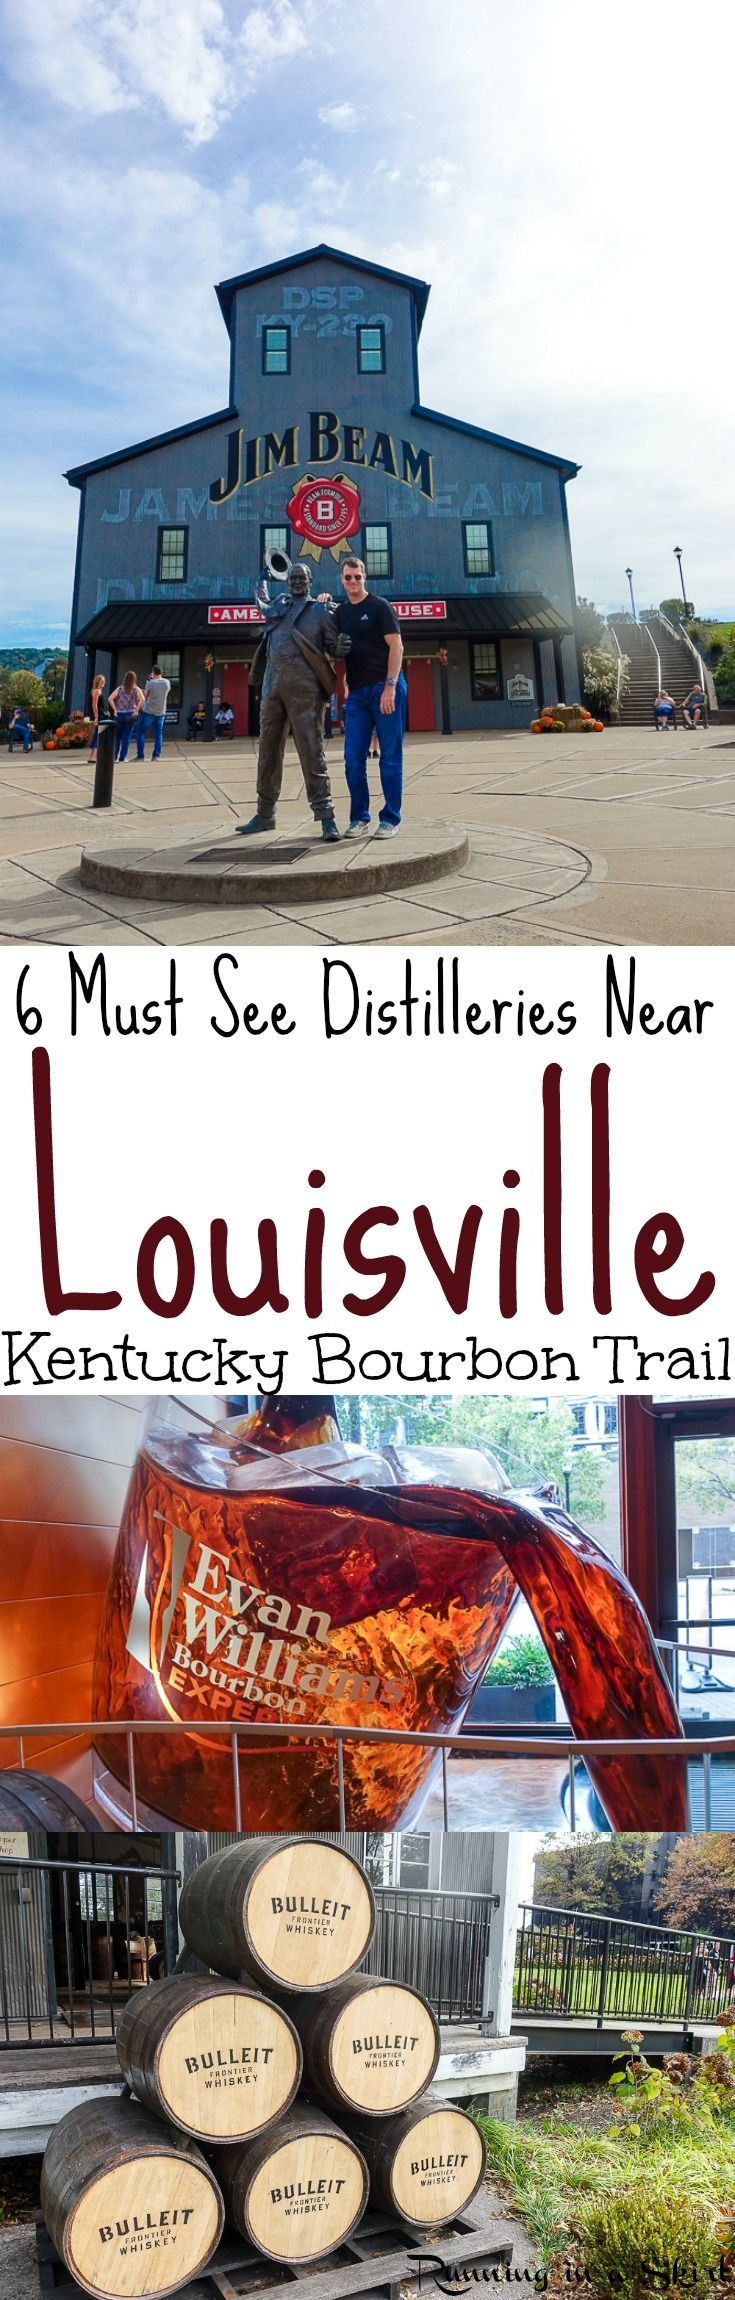 Kentucky Bourbon Trail- 6 Must See Distilleries Near Louisville.  Things to do if you love bourbon and are staying in Louisville including Jim Beam, Angel's Envy, Bullet, Evan Williams and Four Roses. Learn history and taste them all.  Move this to the top of your bucket lists trips! / Running in a Skirt